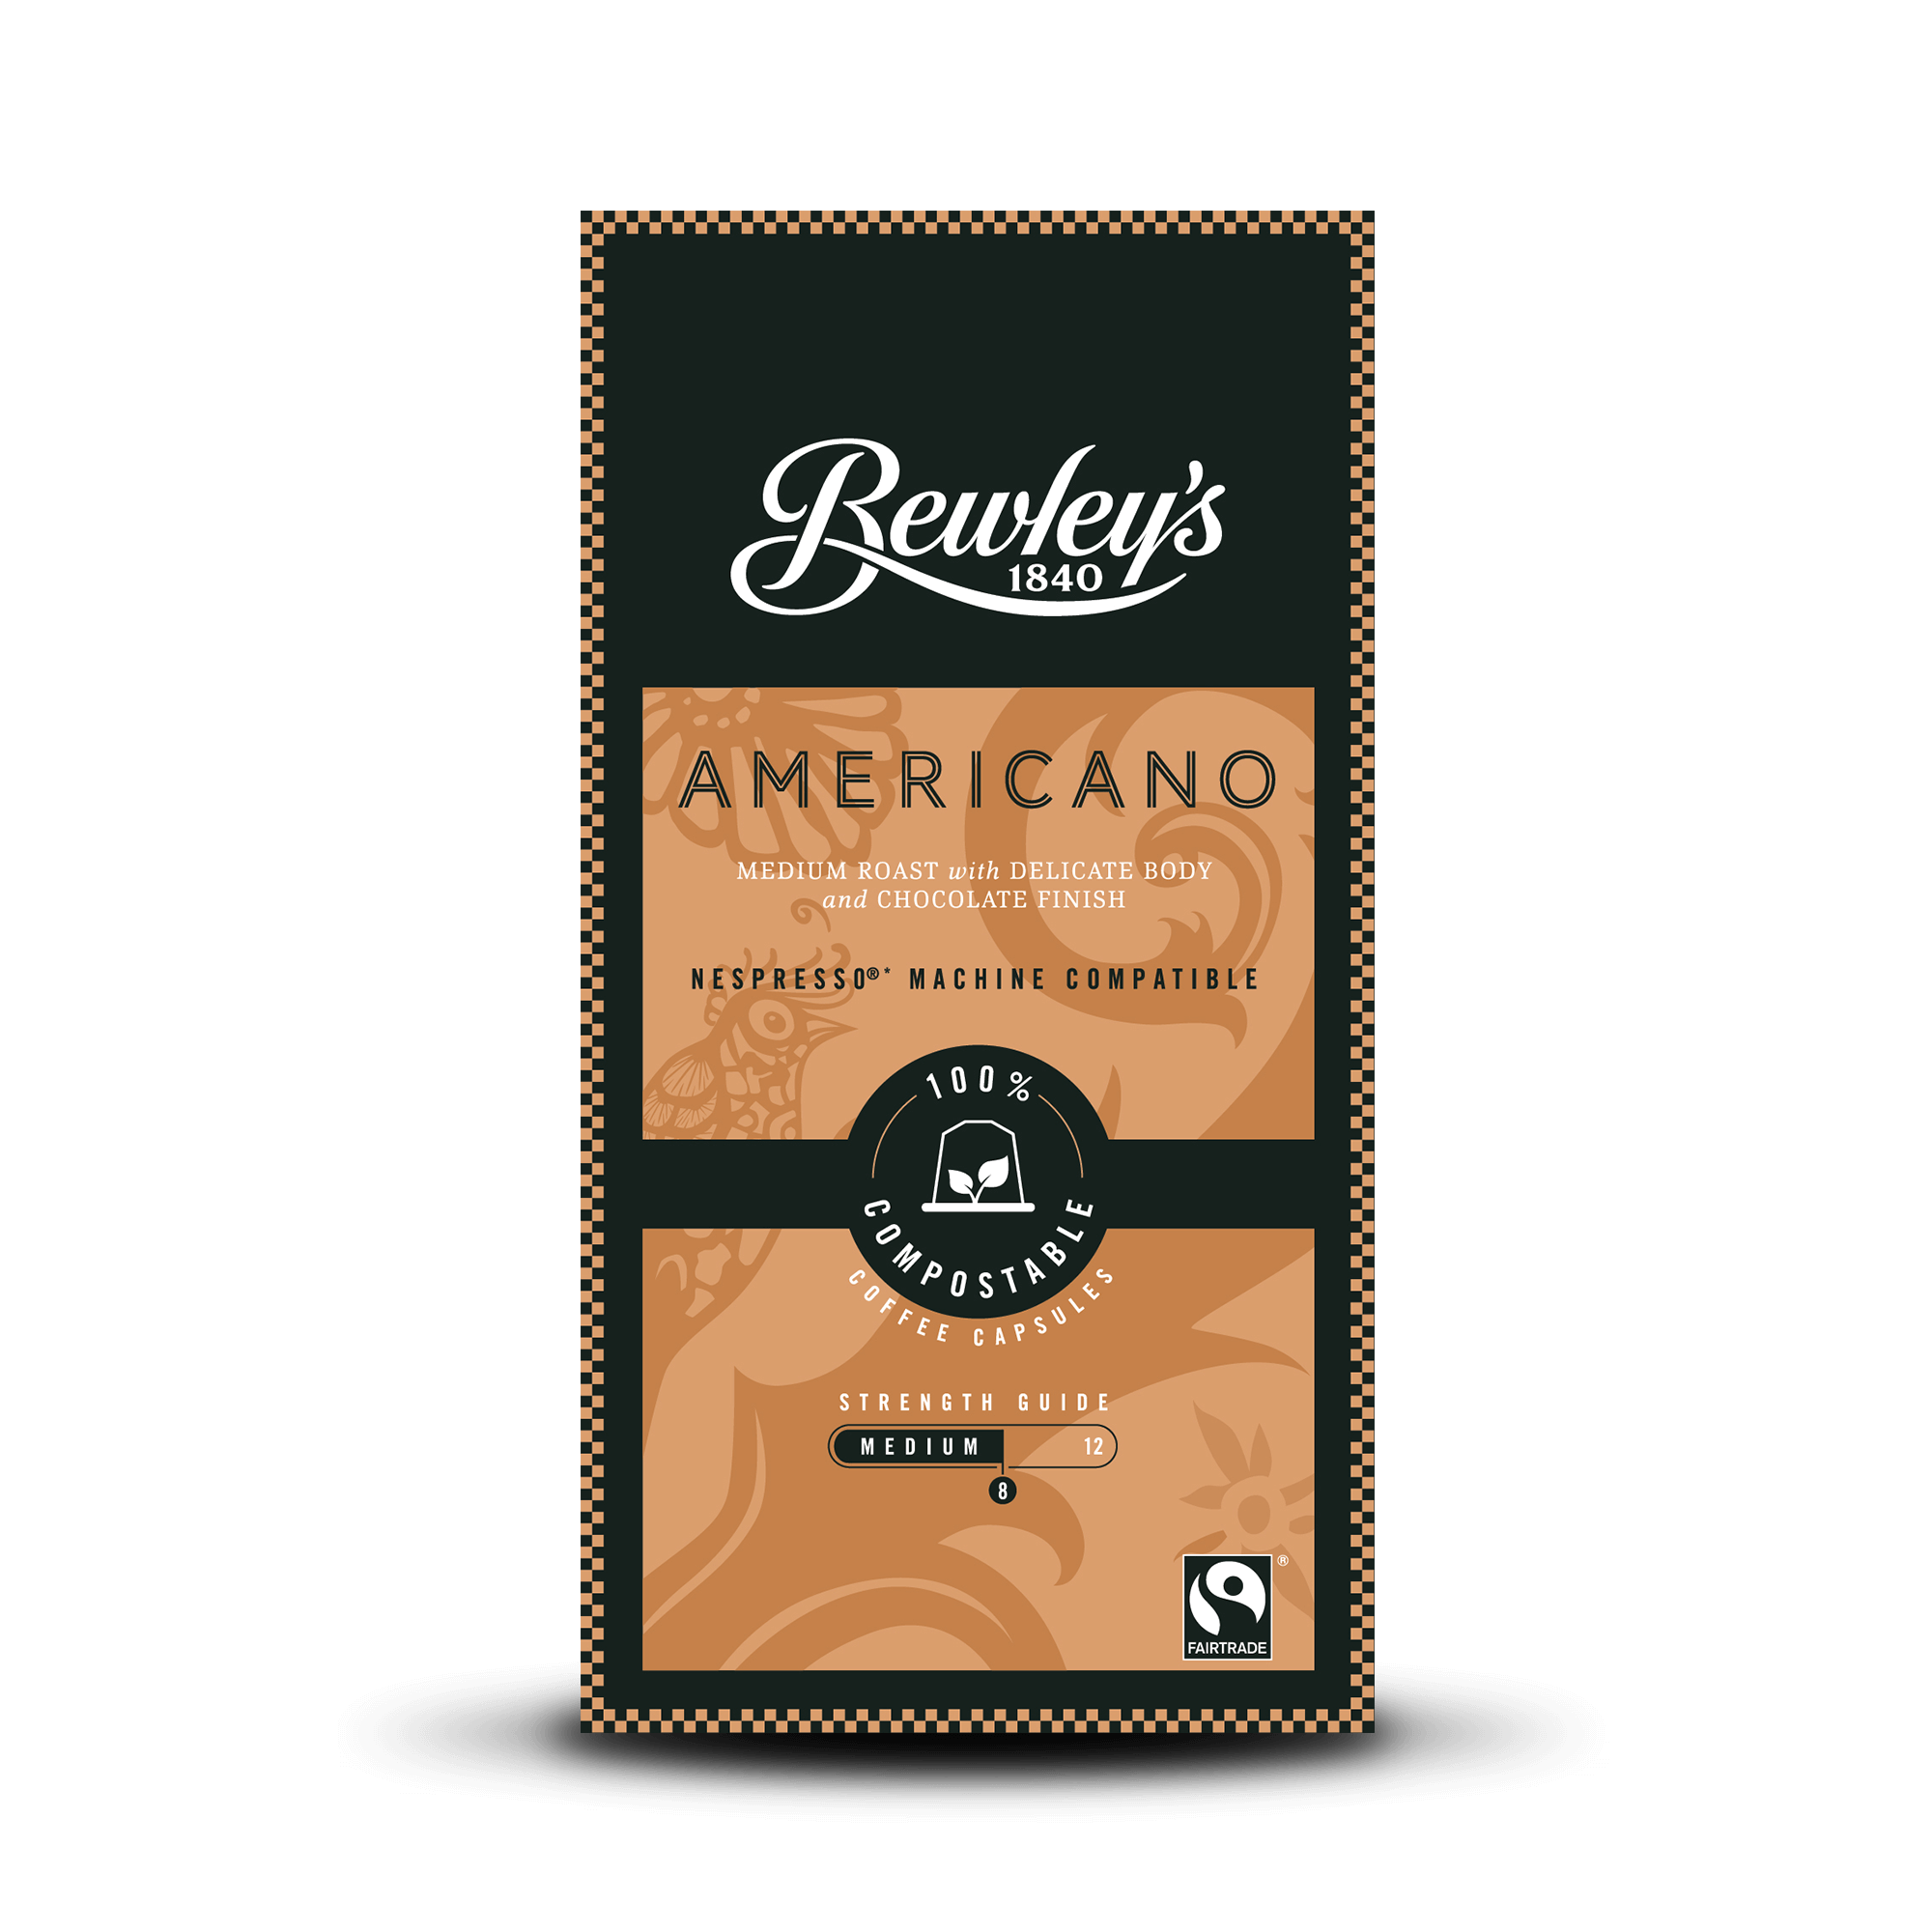 Bewley's Americano Coffee Capsules - Bewley's Tea & Coffee